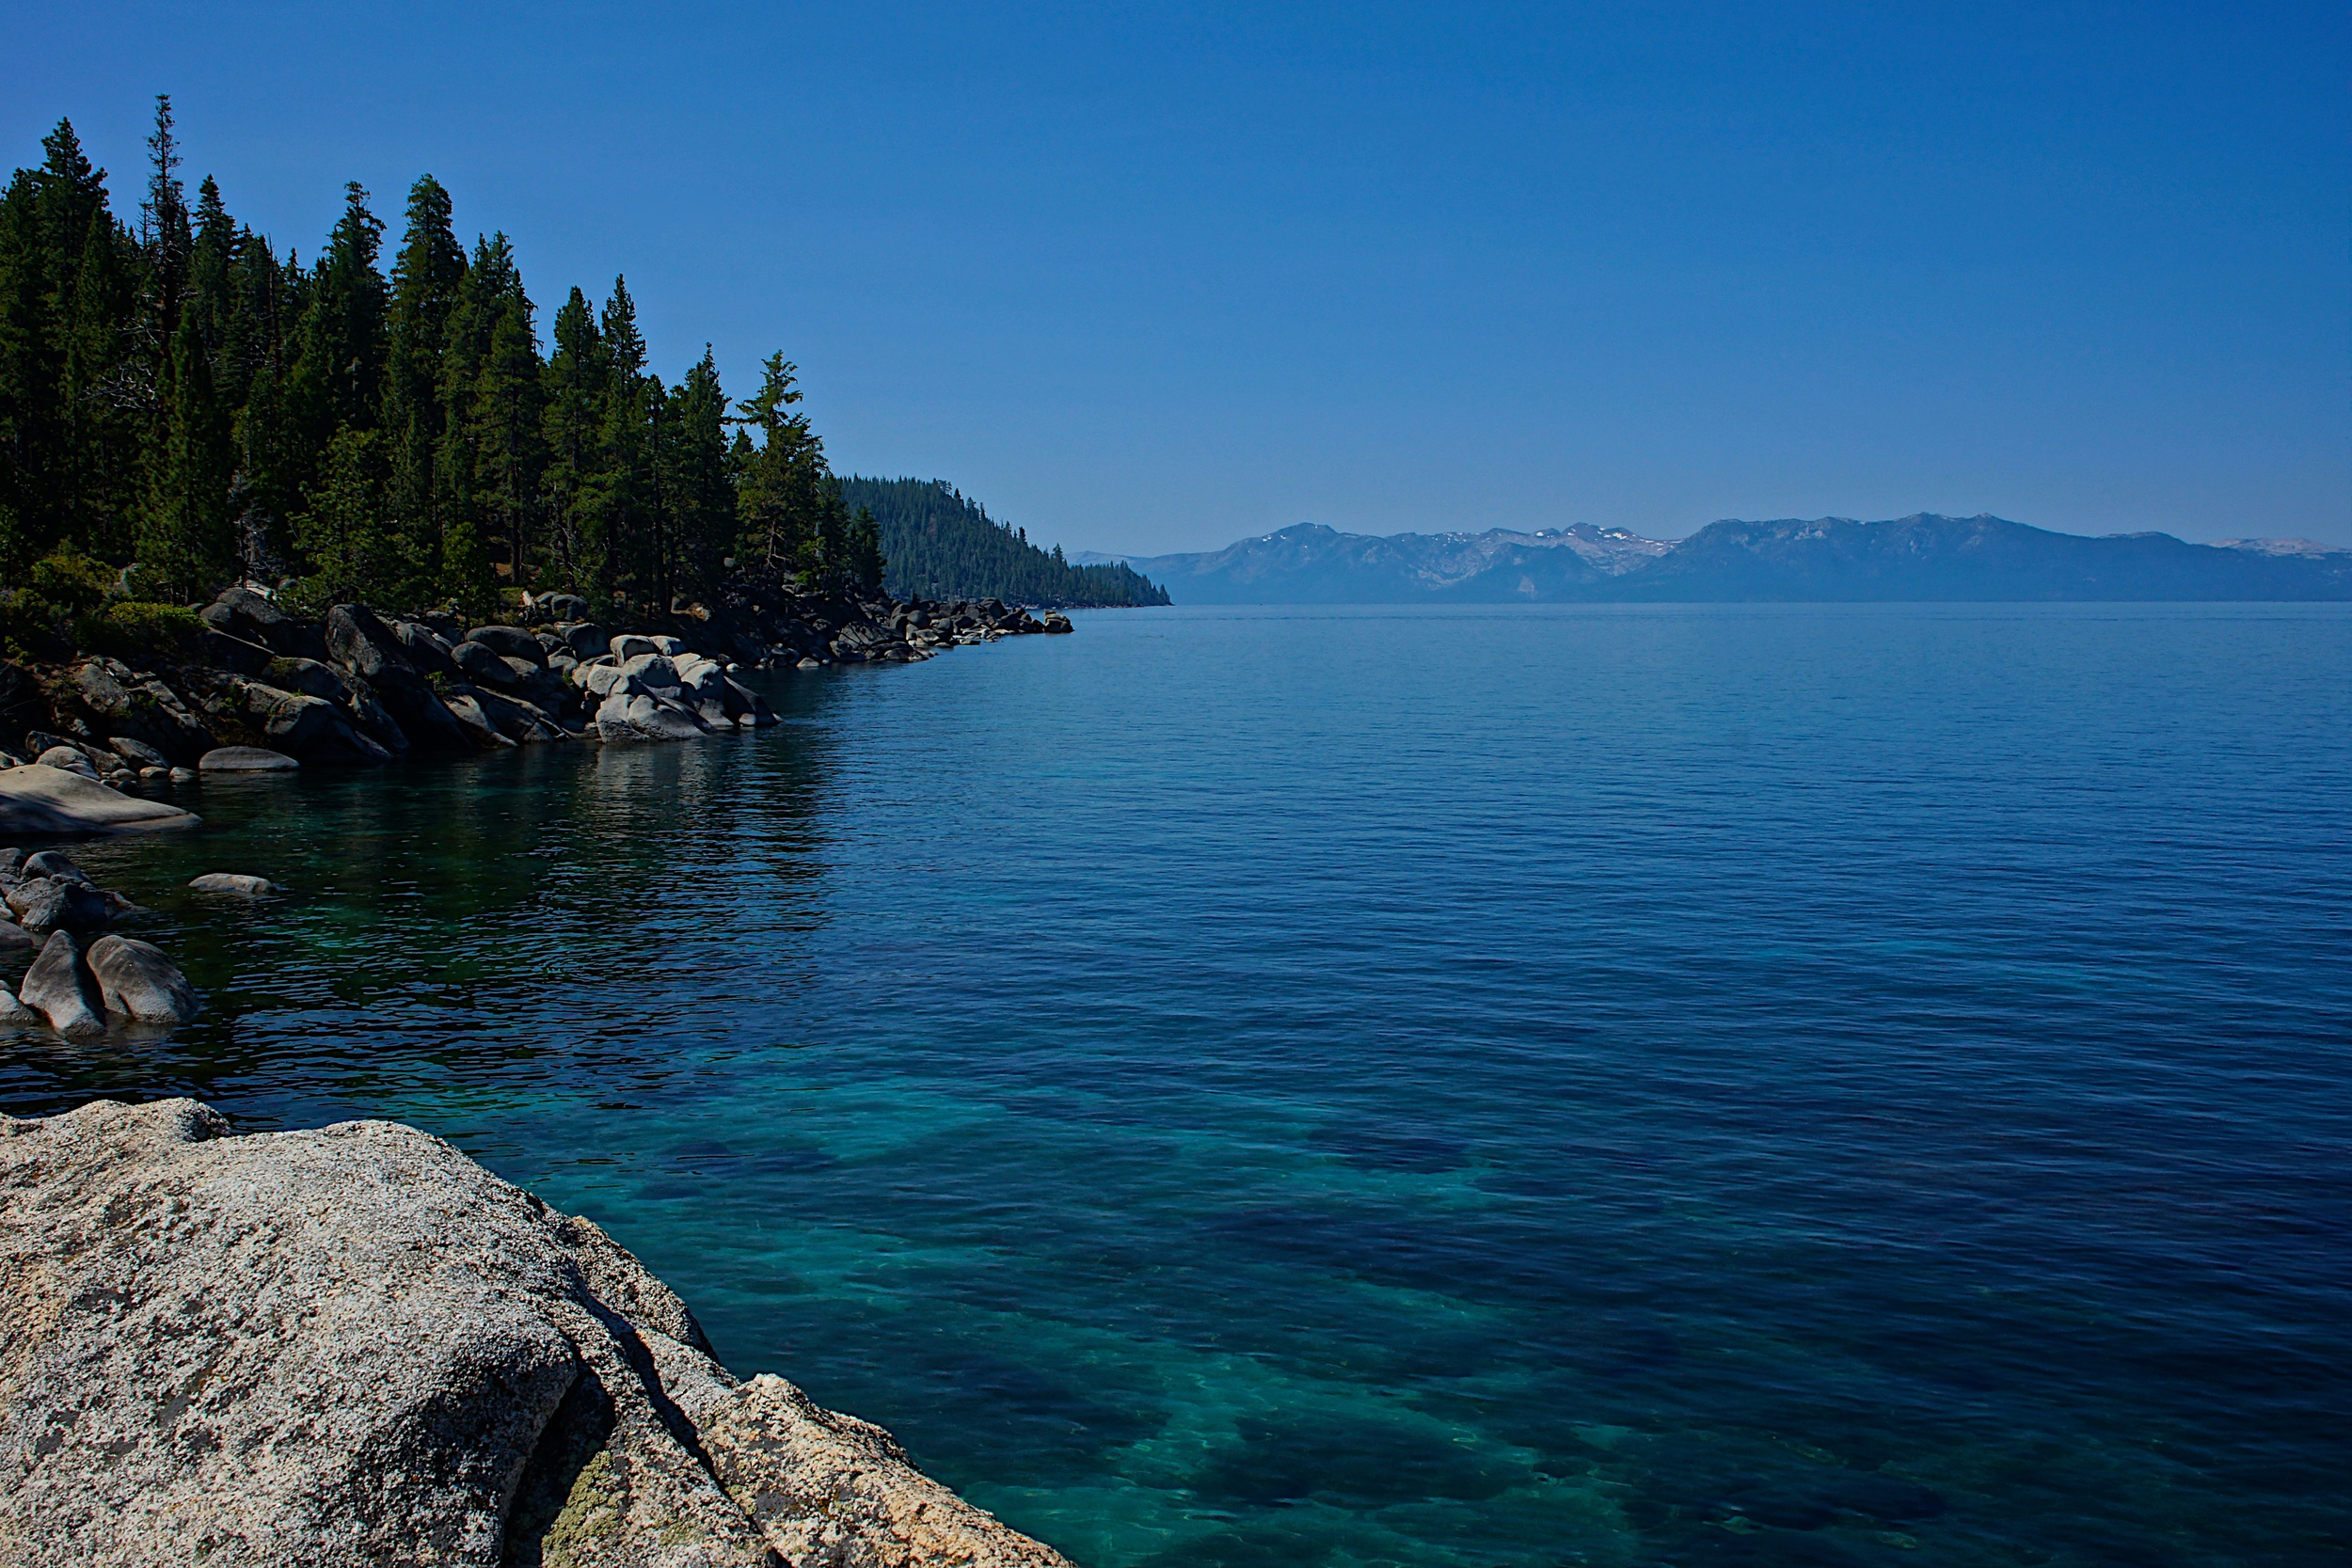 Photo from Secret Harbor on the west side of Lake Tahoe, very near to the course.